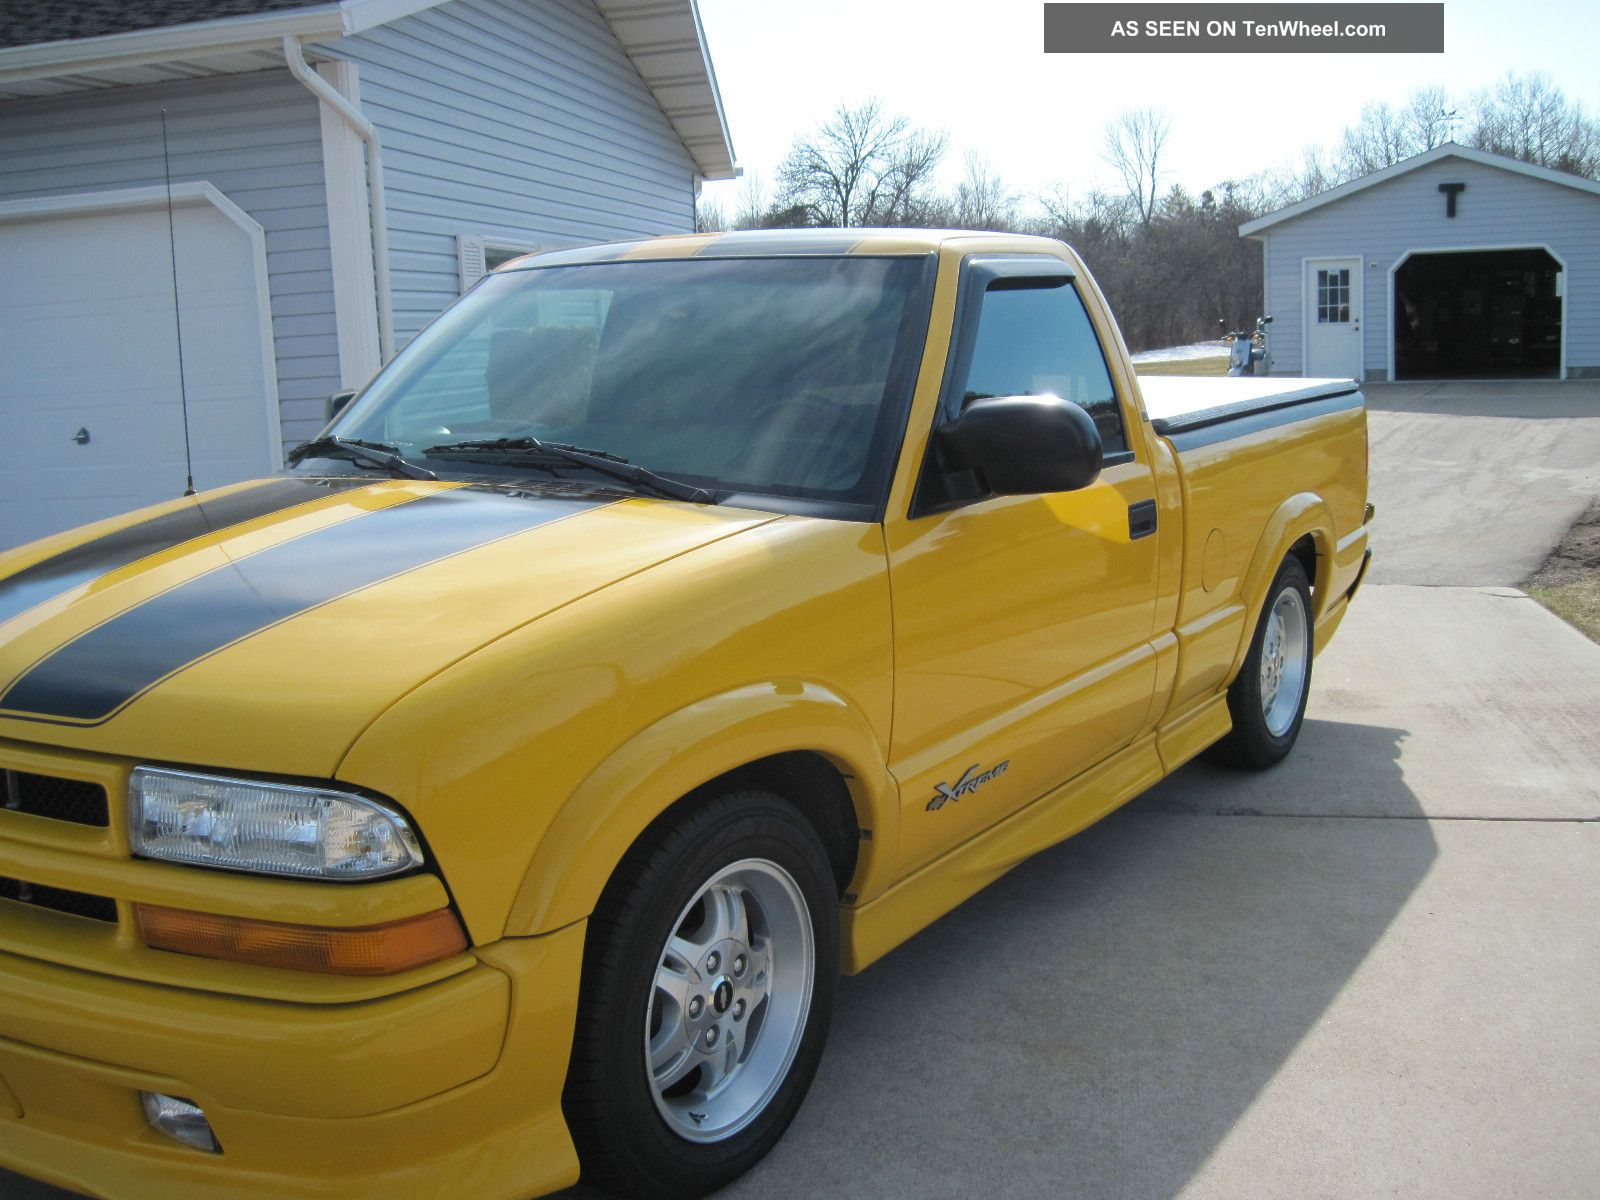 D Alternator Not Charging Charging as well Chevrolet S Xtreme Standard Cab Pickup Door L Lgw as well  further Custom Built Air Ride Chevy S Xtreme Blazer furthermore . on 2002 chevy s10 transmission